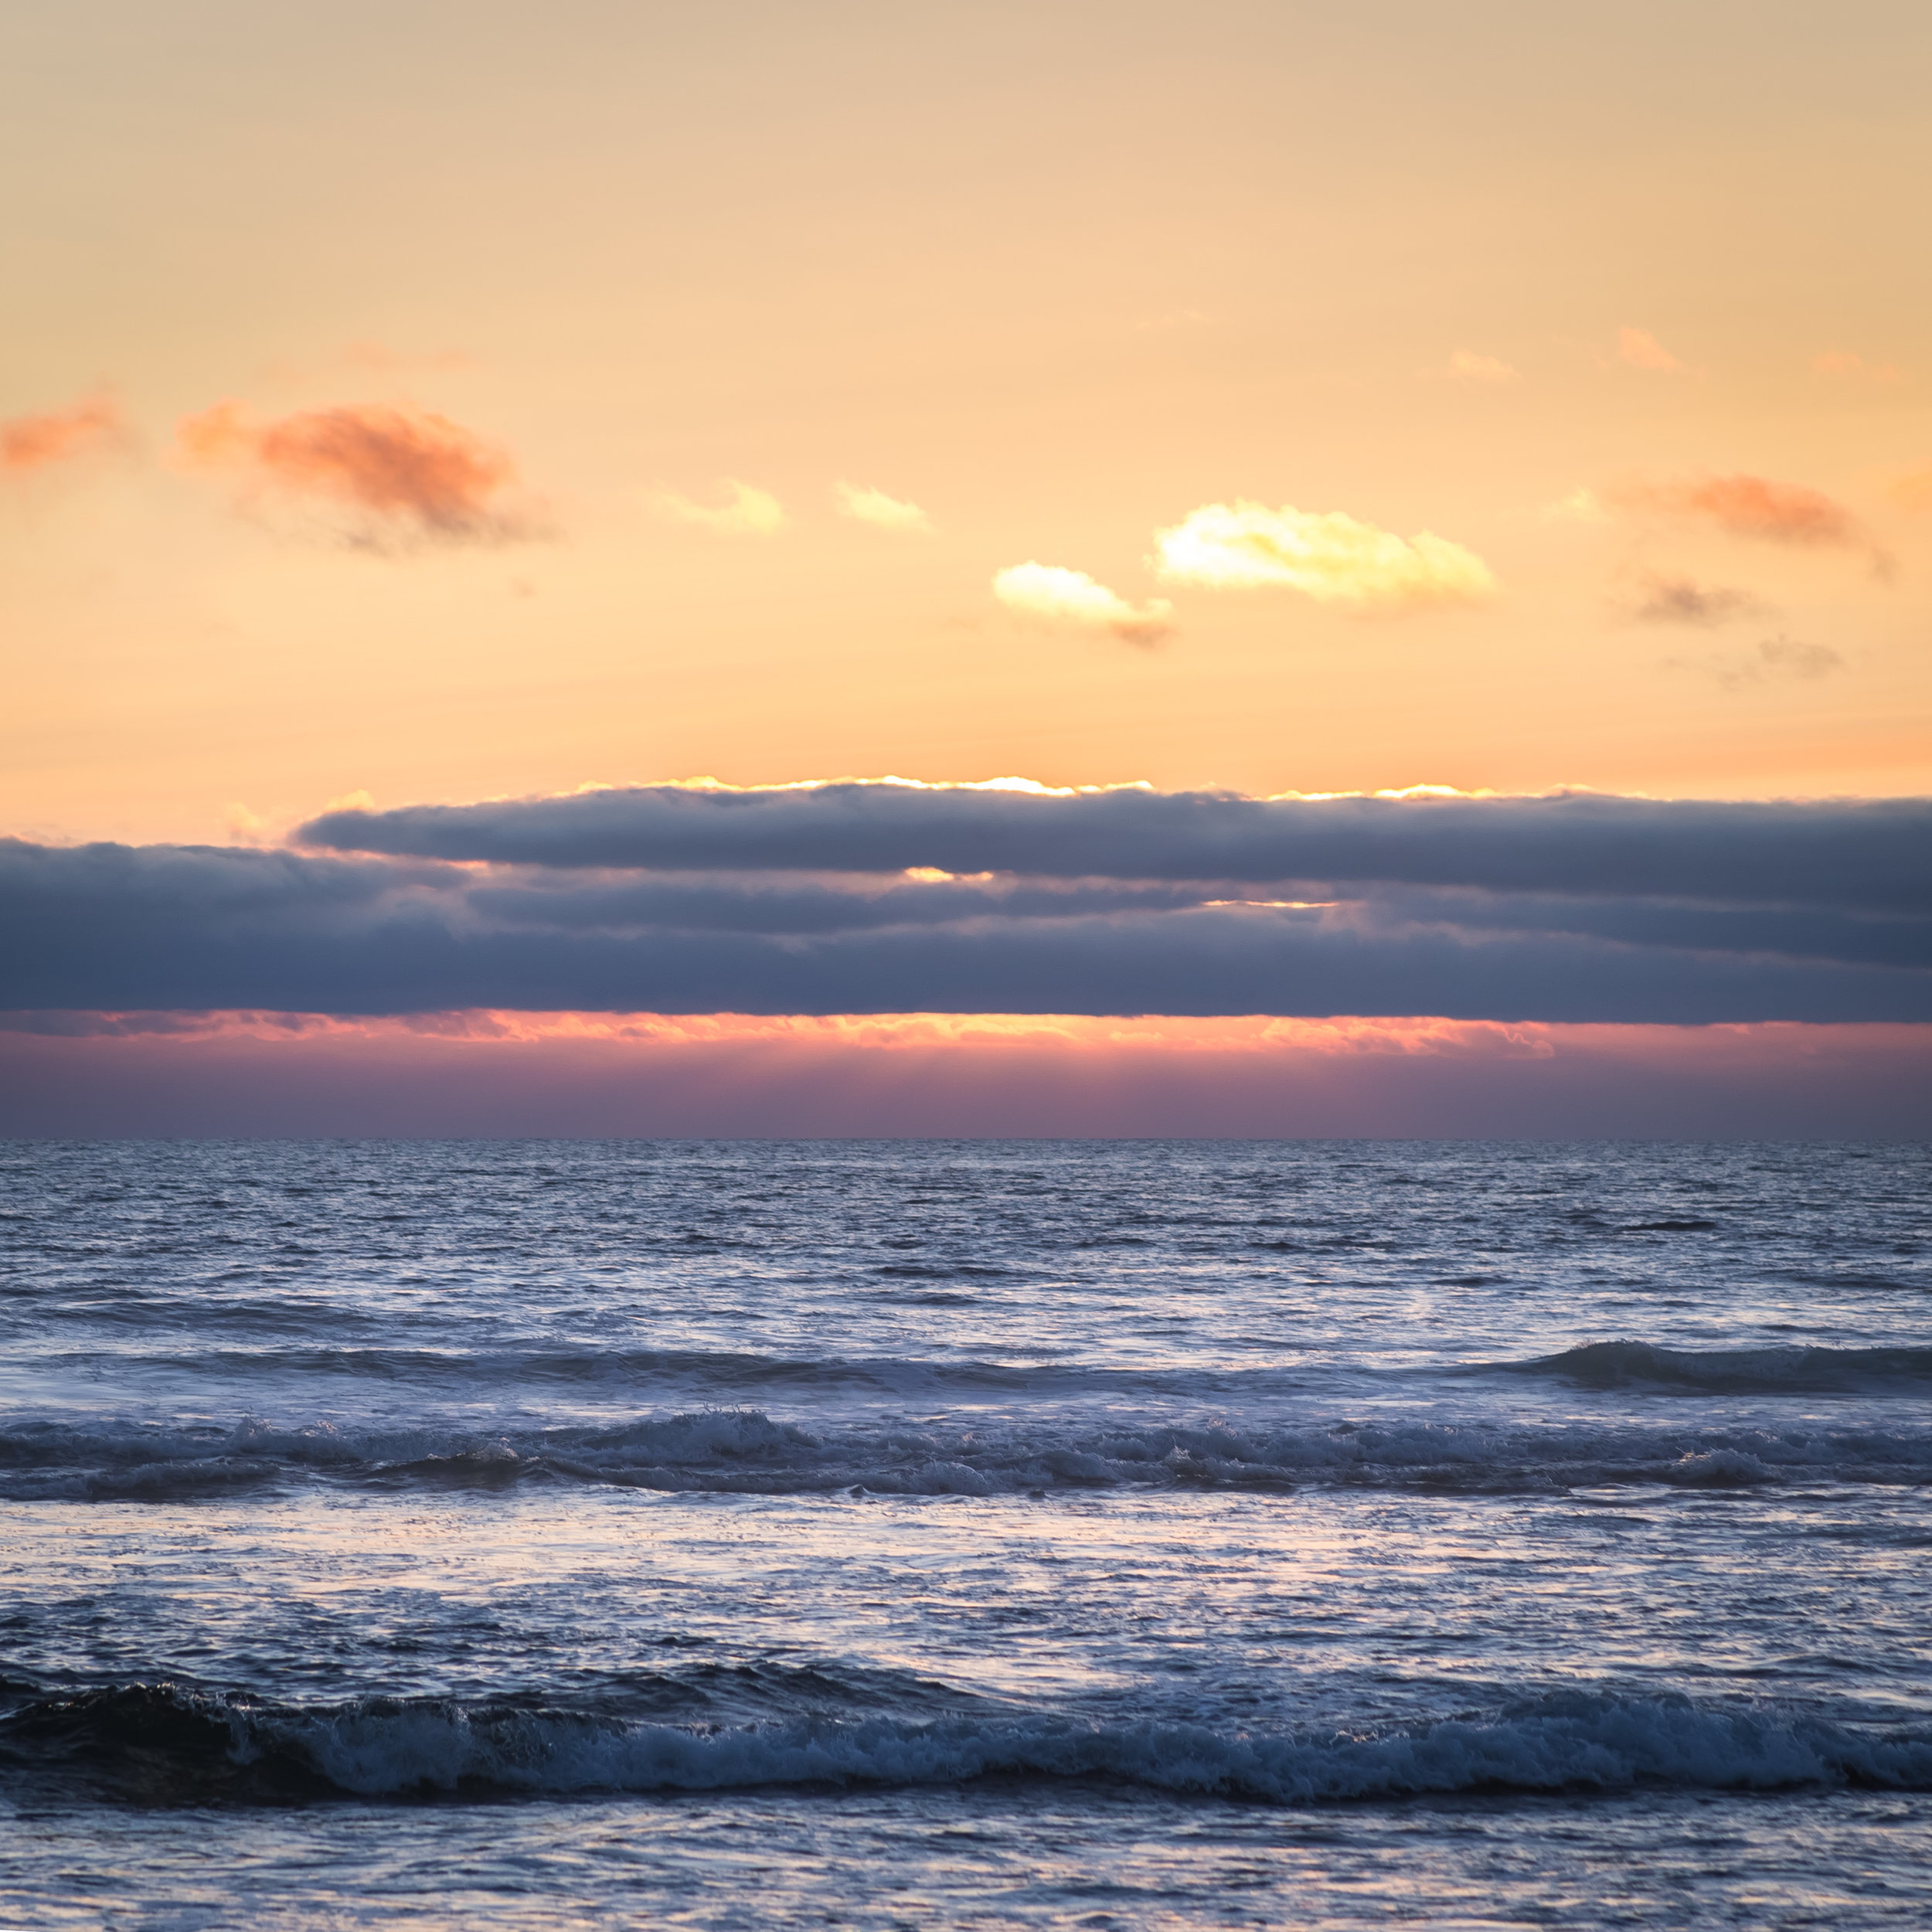 """Ocean - 12x12 print in a 16x16 ma  Taken on July 7, 2015 in Lincoln City, Oregon.  """"If people sat outside and looked at the stars each night, I'll bet they'd live a lot differently. ...when you look into infinity, you realize that there are more important things than what people do all day."""" -Bill Watterson  This also applies to the ocean.   First shown at the Denver Art Society -November 2016 First Friday."""